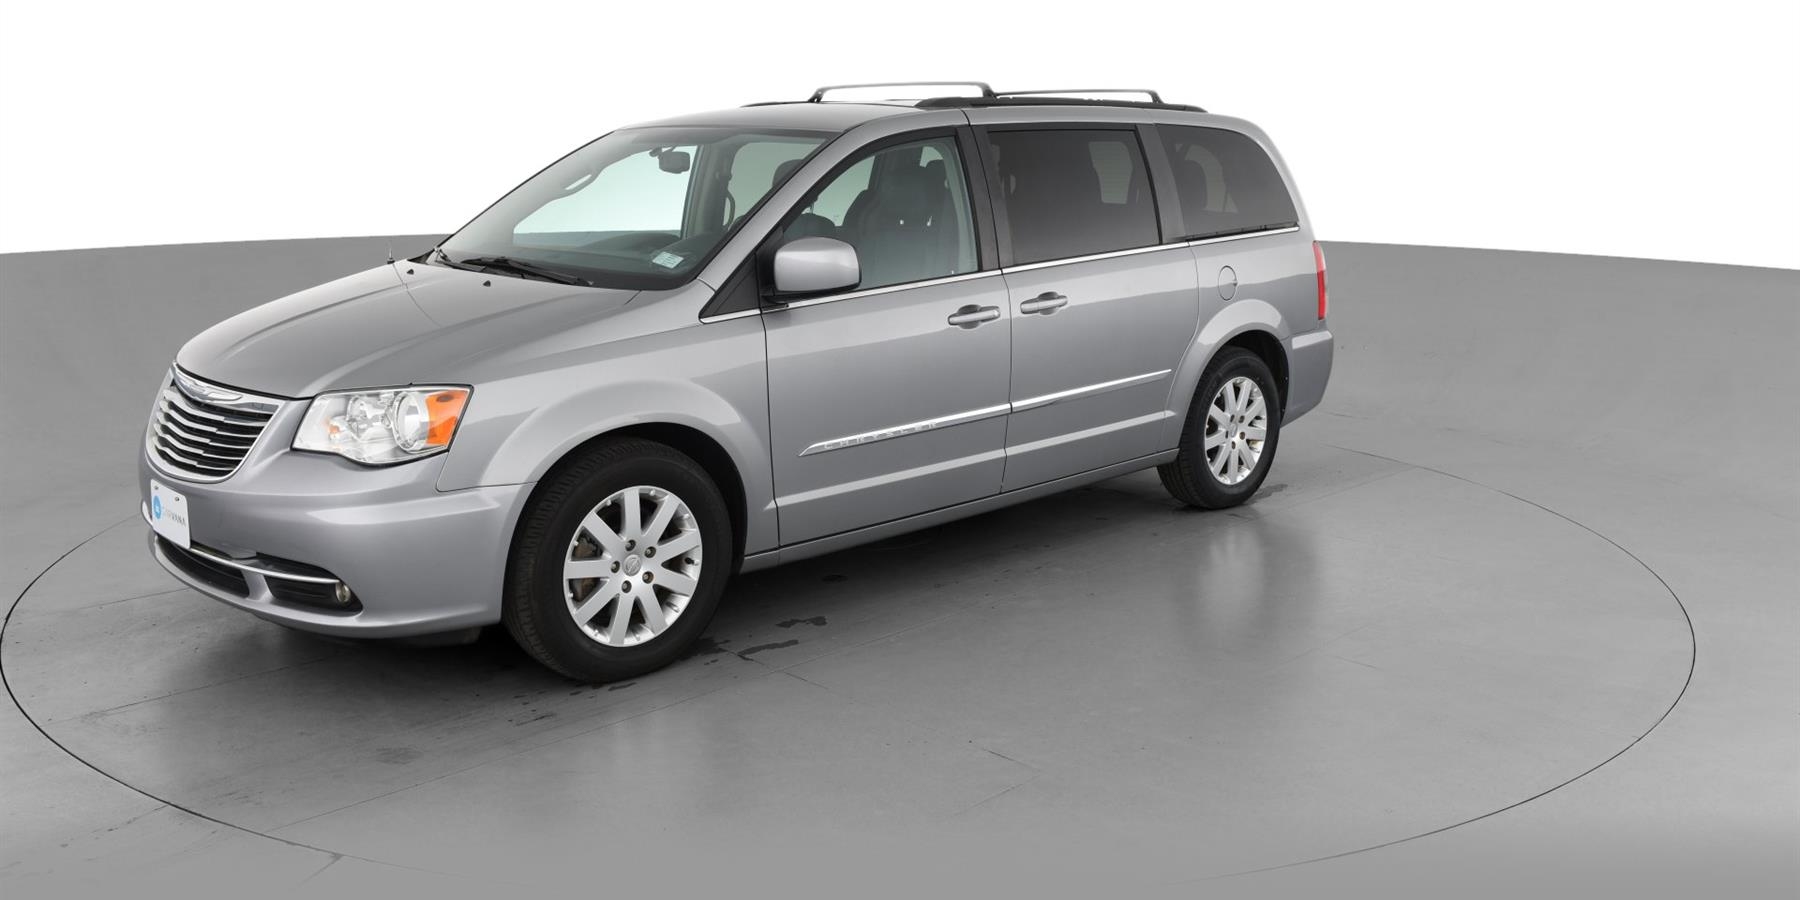 2016 Chrysler Town & Country Touring Minivan 4D for Sale